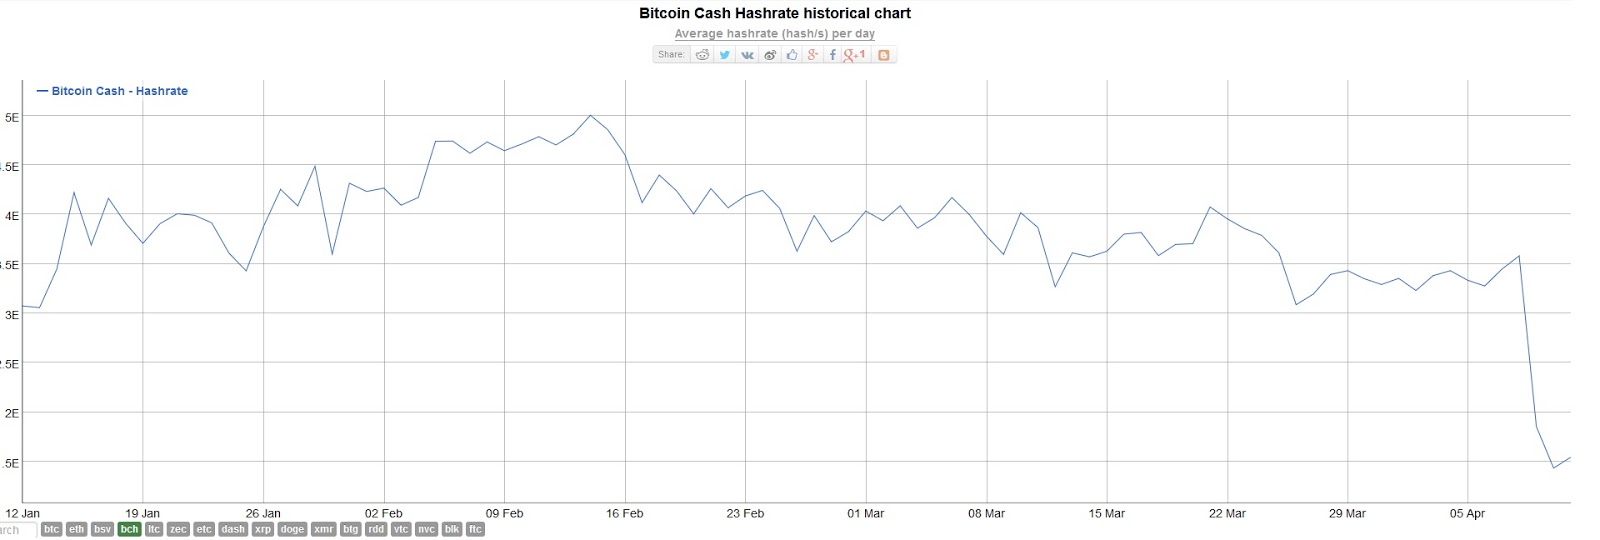 BCH hashrate chart. Source: BITINFOCHARTS